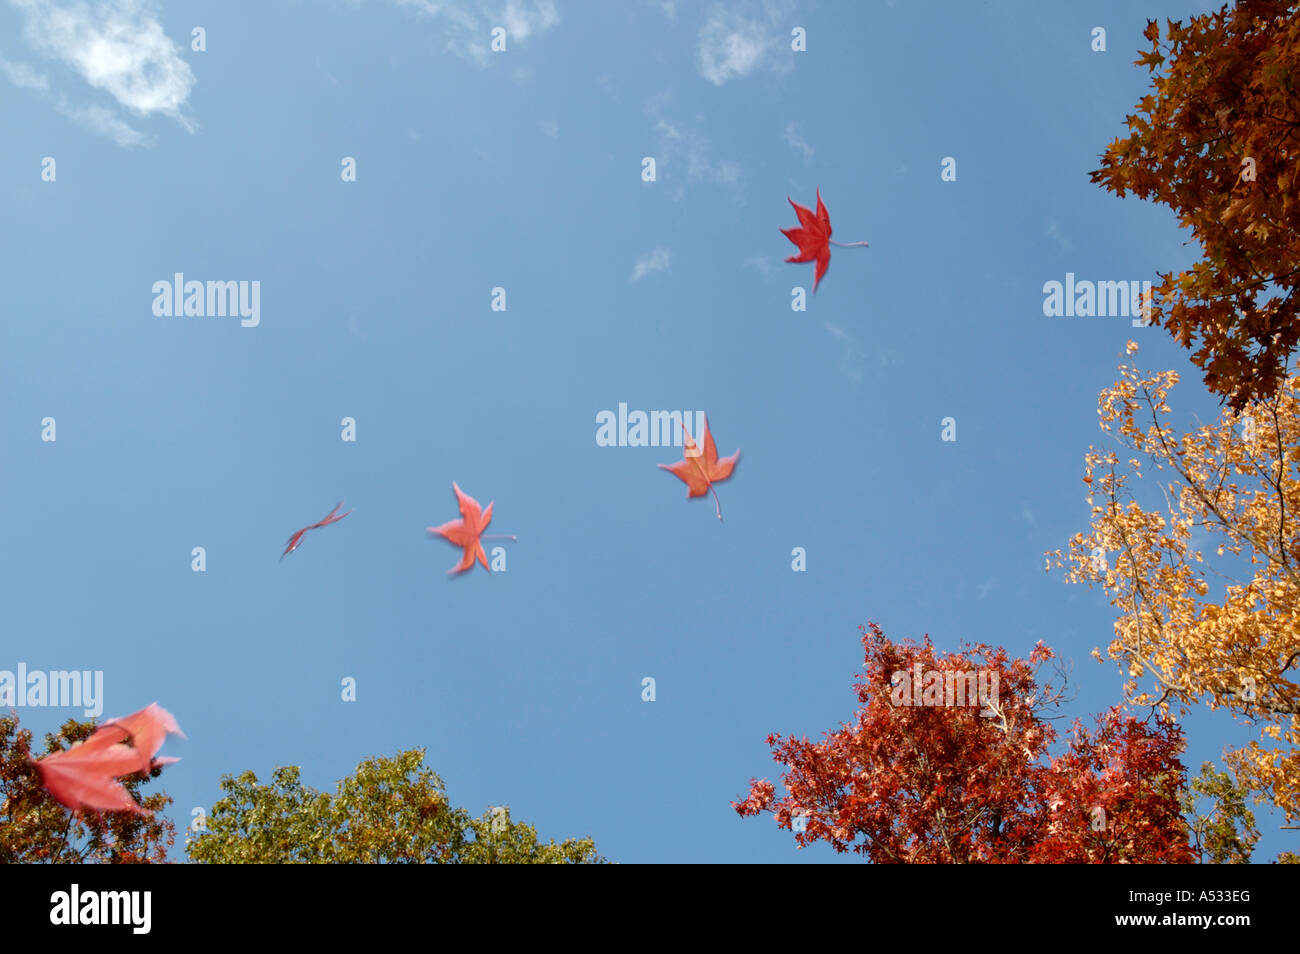 Maple leaves falling against a blue autumn sky - Stock Image